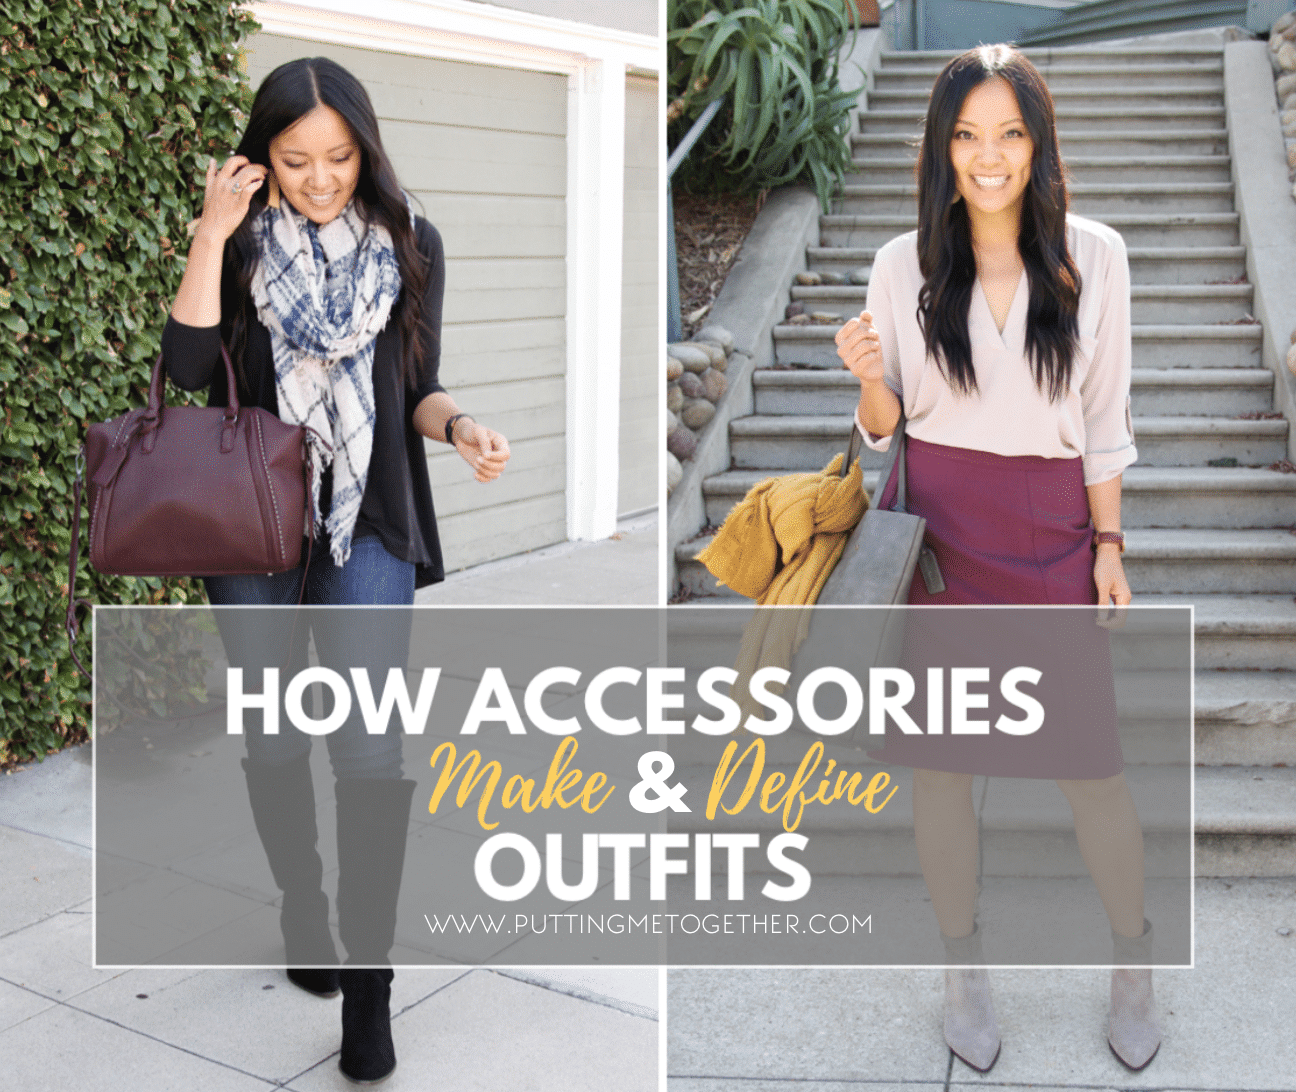 How Accessories Make or Break and Define Outfits